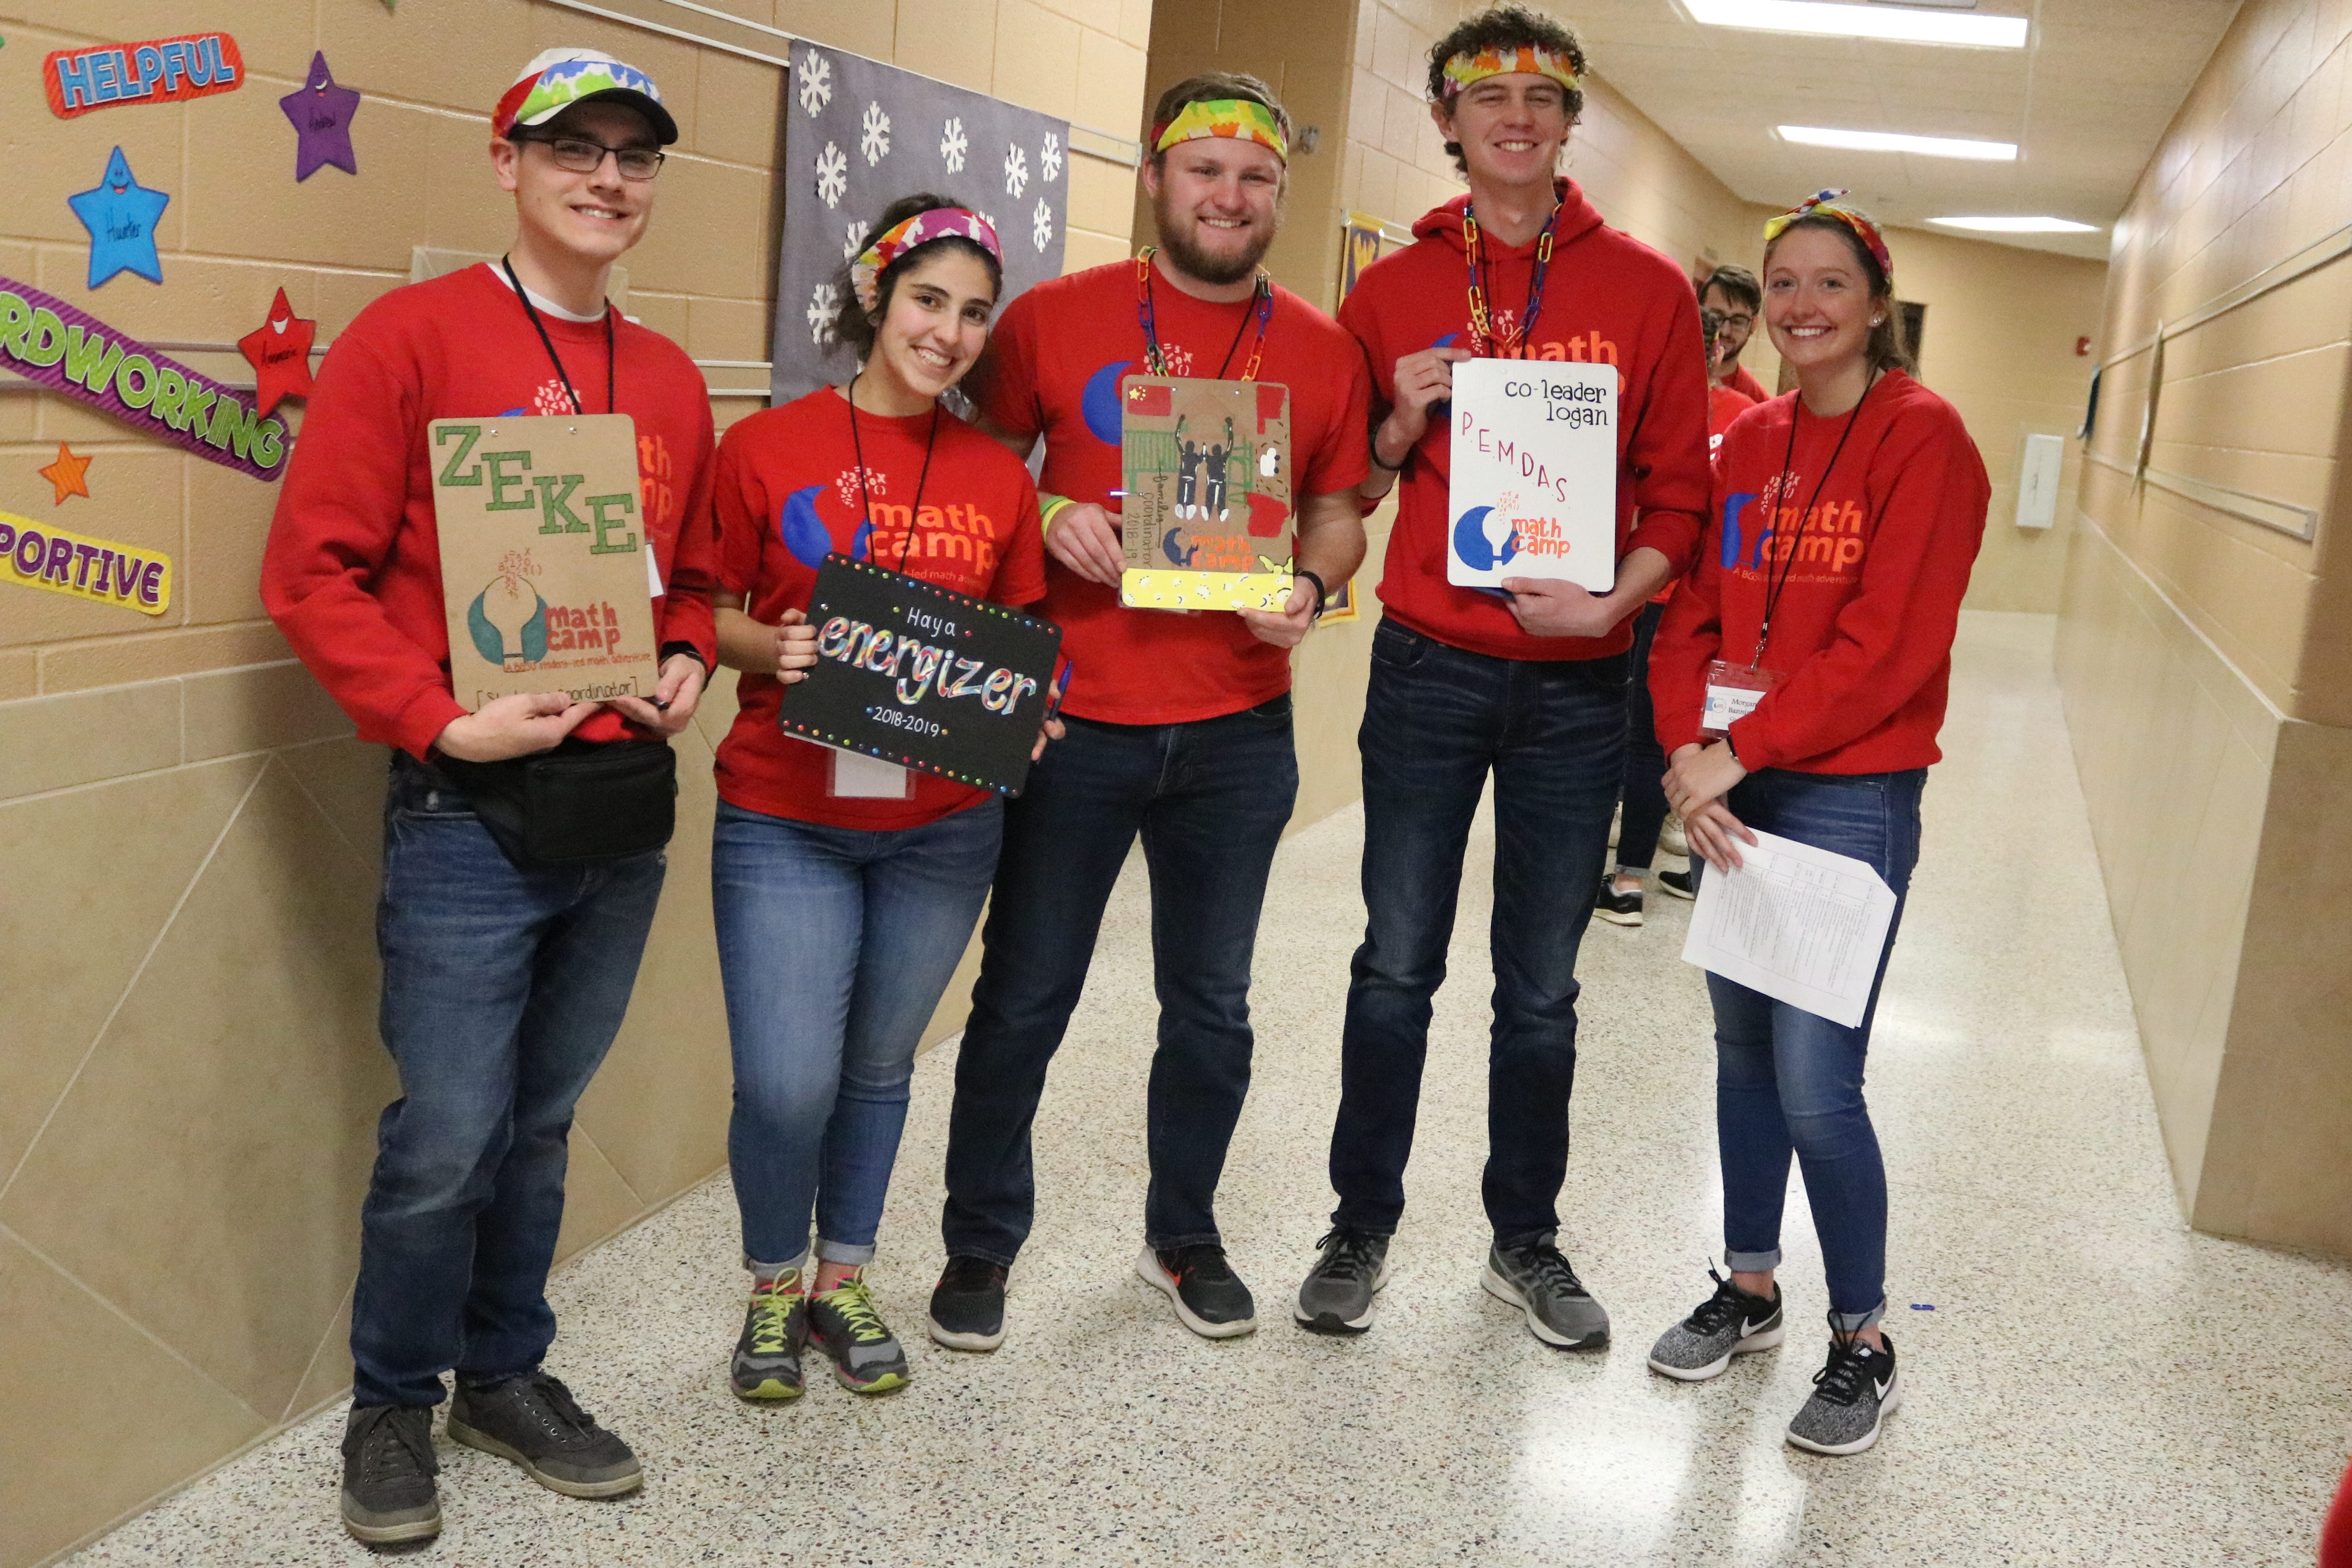 Zeke Ferrell, Haya Saadeh, Nick Drown, Logan Selby, Morgan Bannister, each education students at Bowling Green State University, are the lead organizers of the Math Camp program, which visited Green Springs Elementary on Saturday.